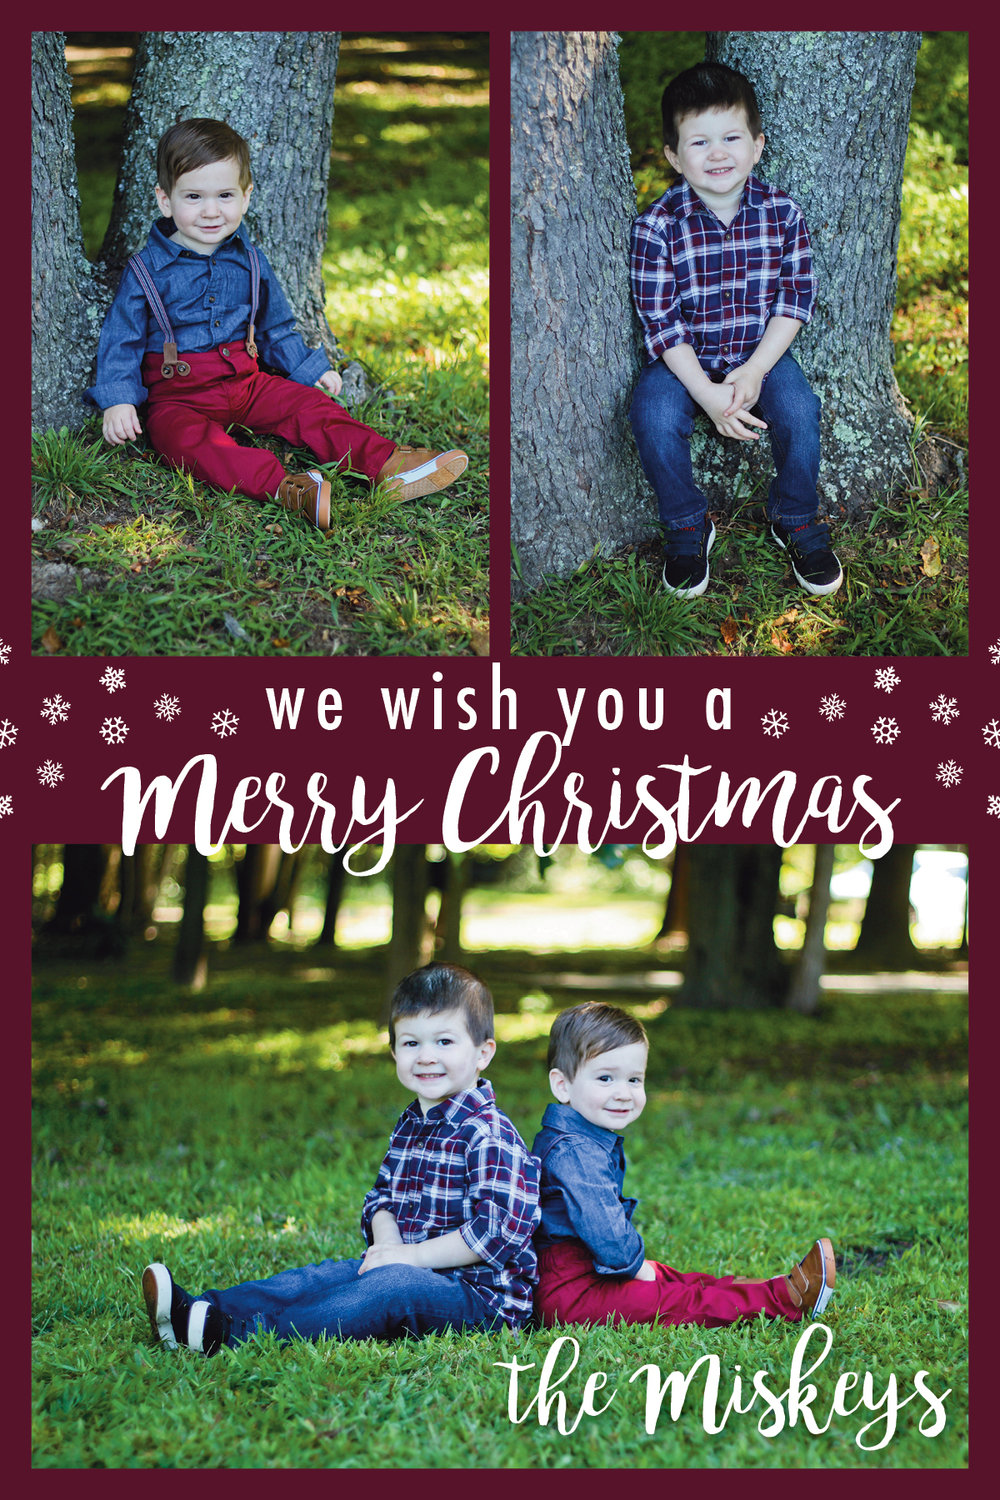 Snowflake Merry Christmas card customizable with your family's name and pictures